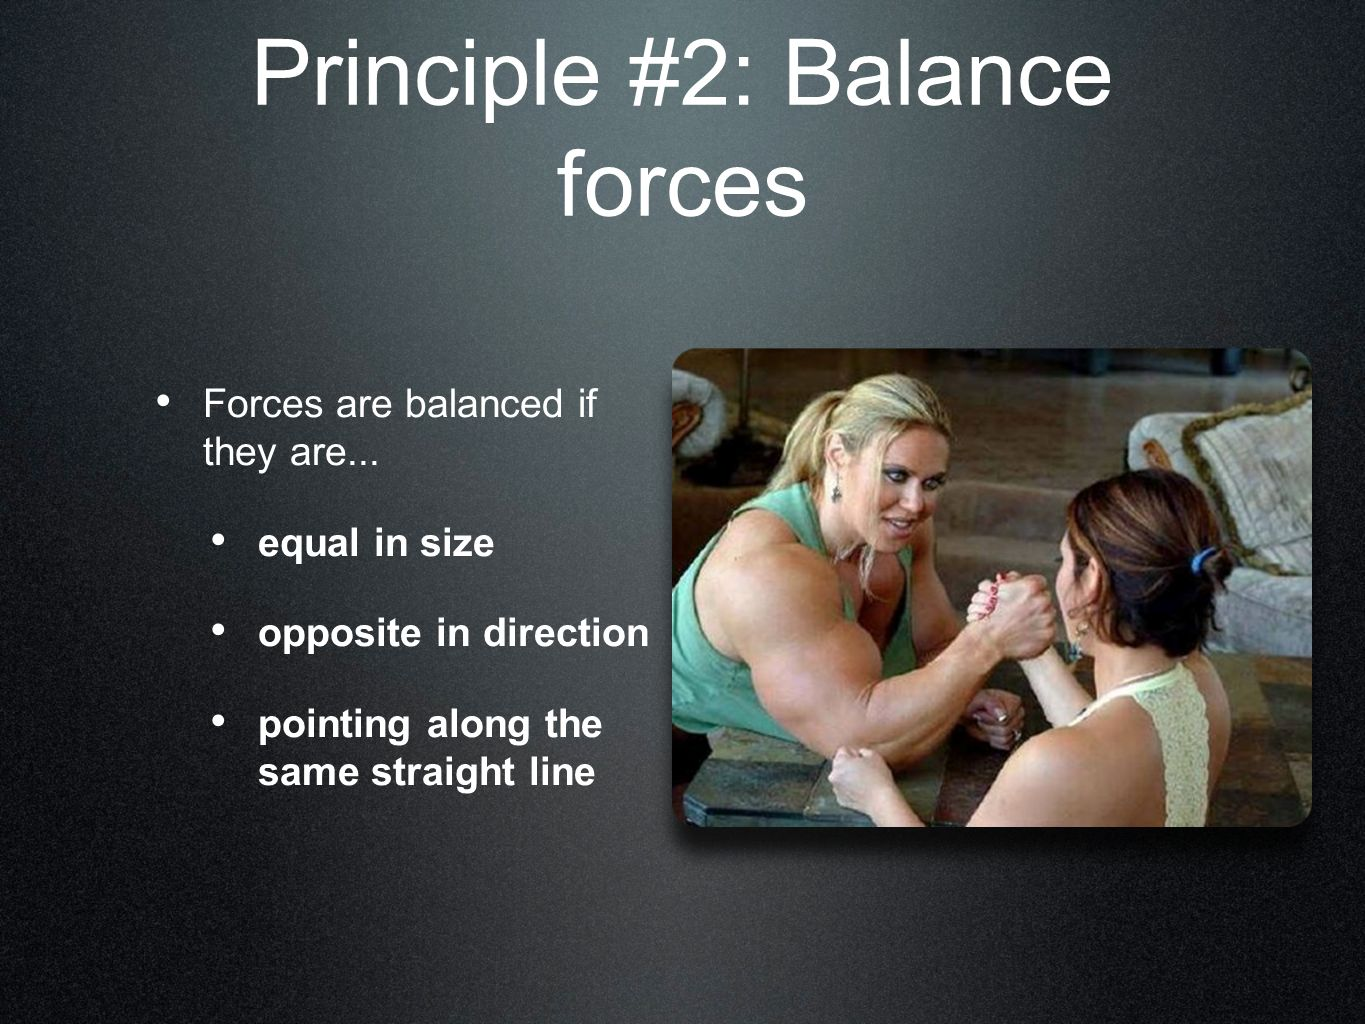 Principle #2: Balance forces